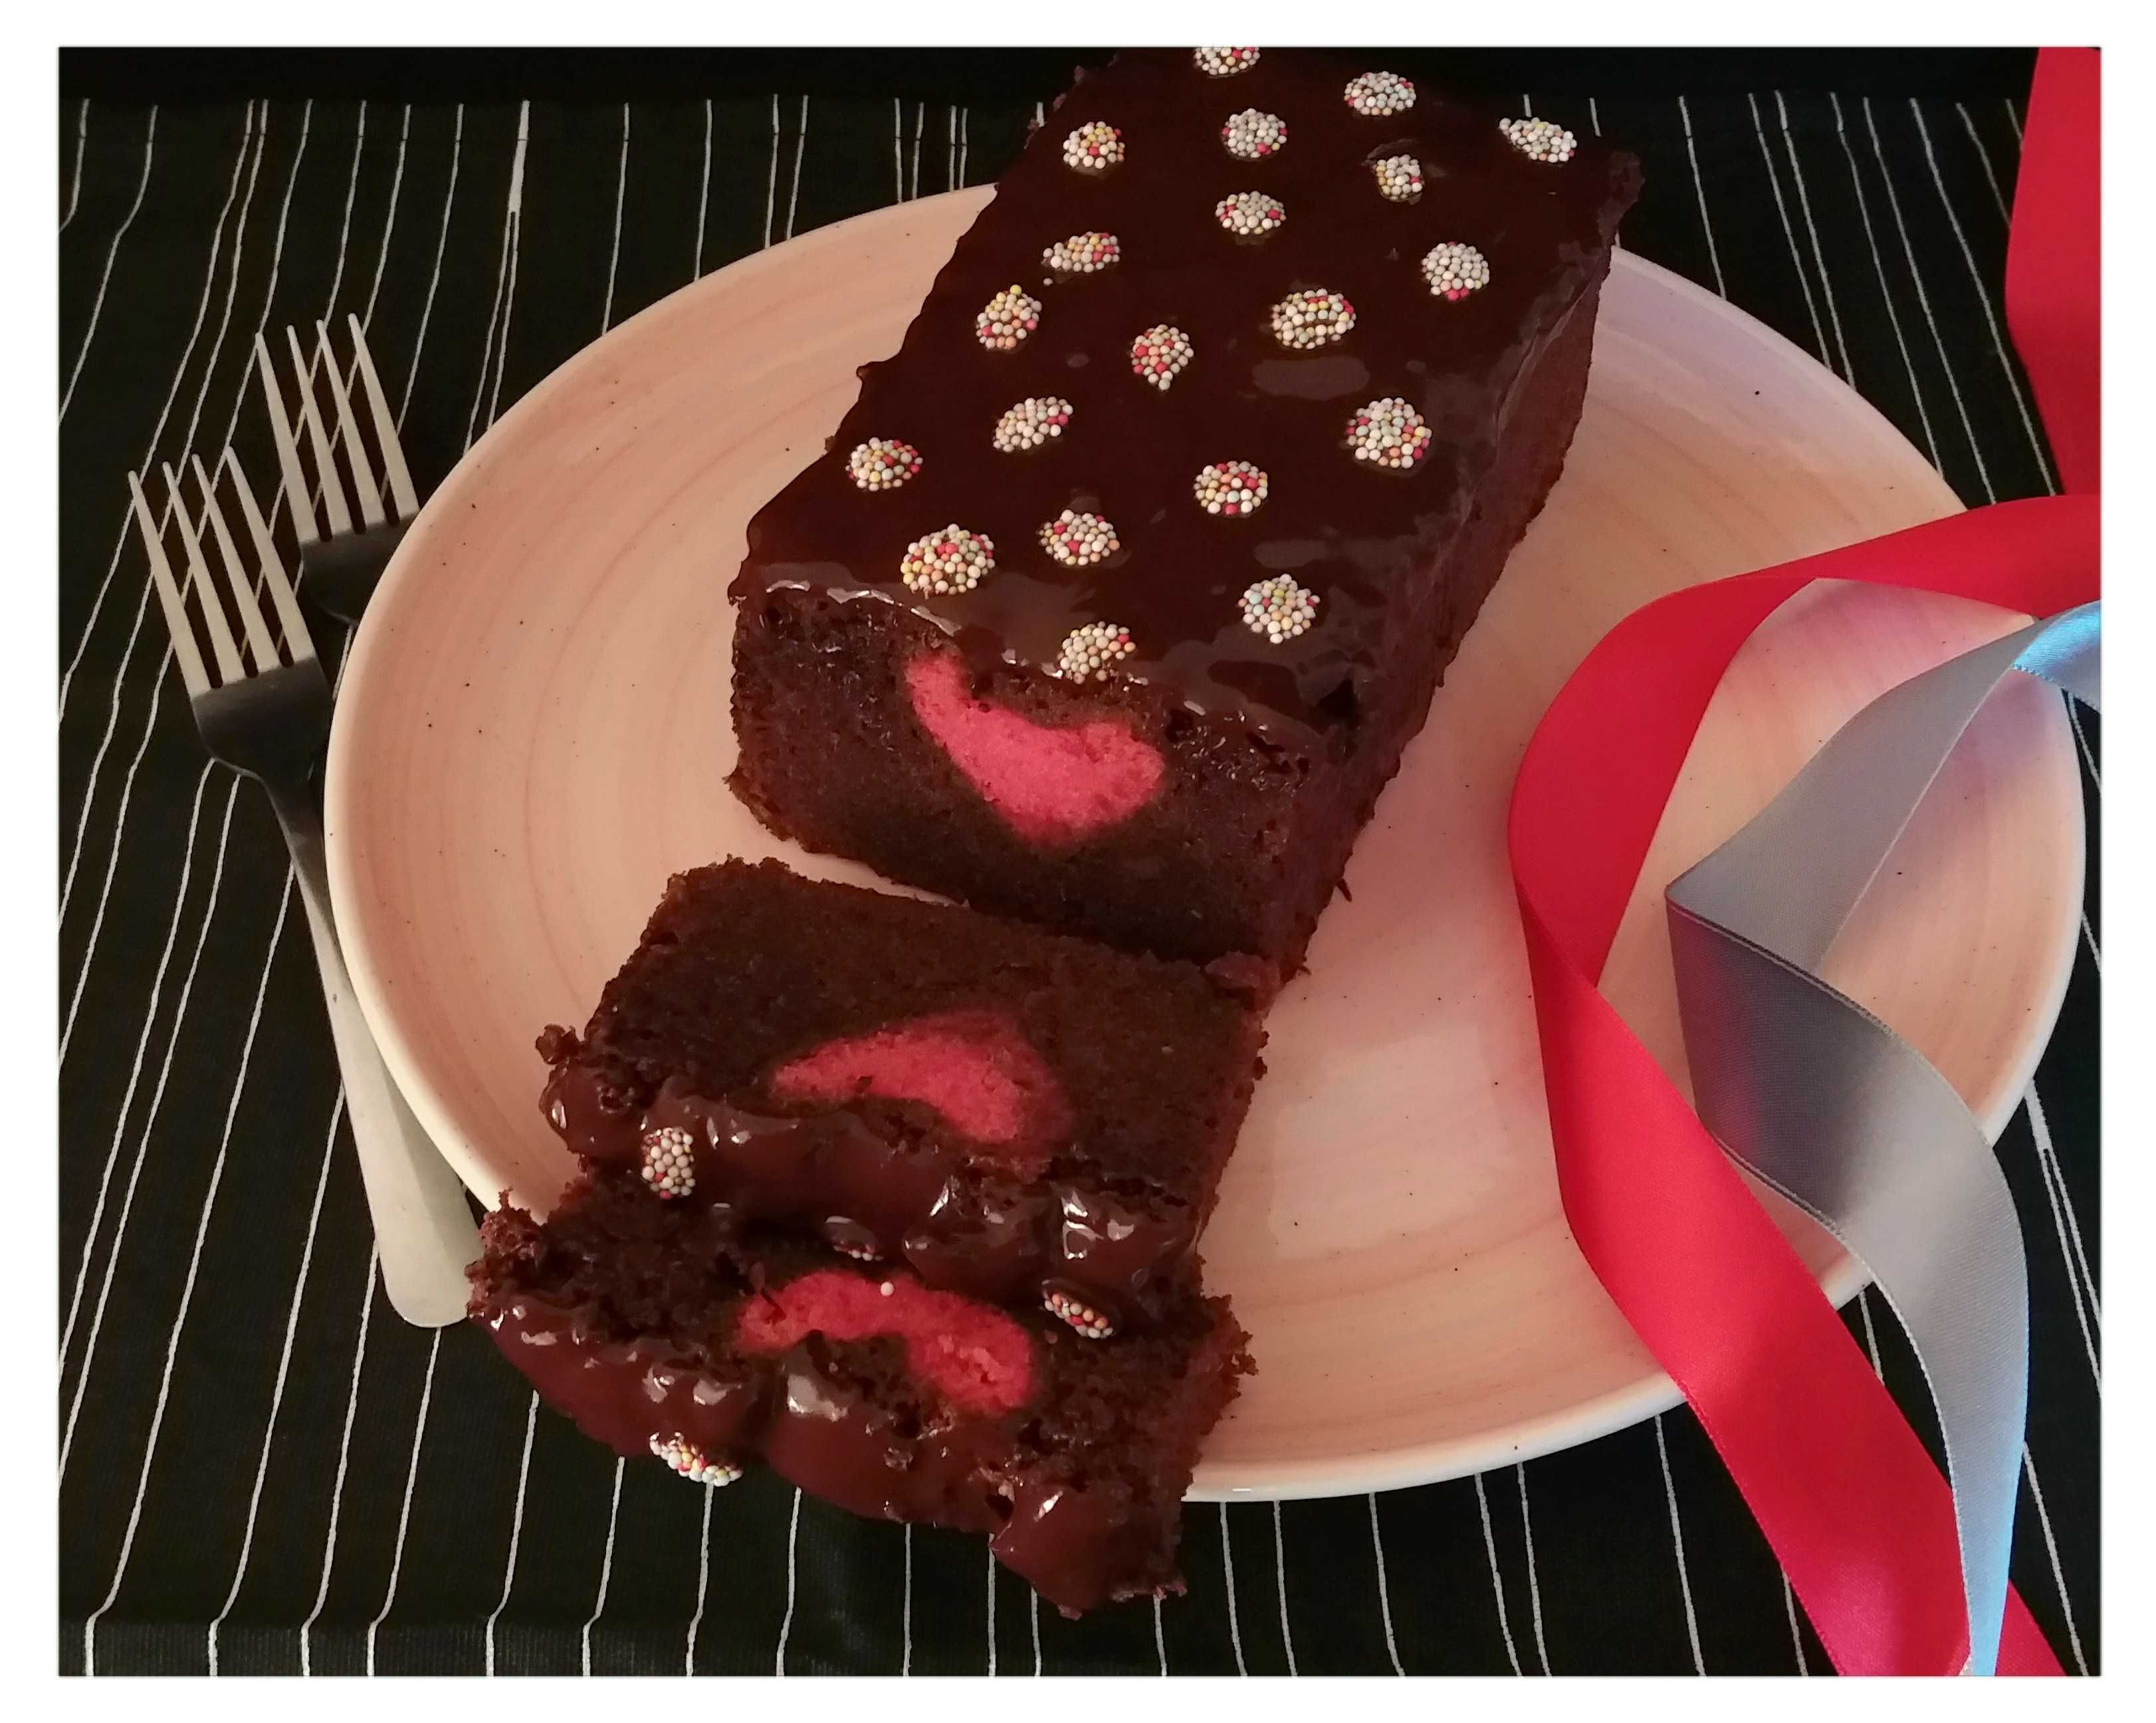 Chocolate Pound Cake With Hidden Heart